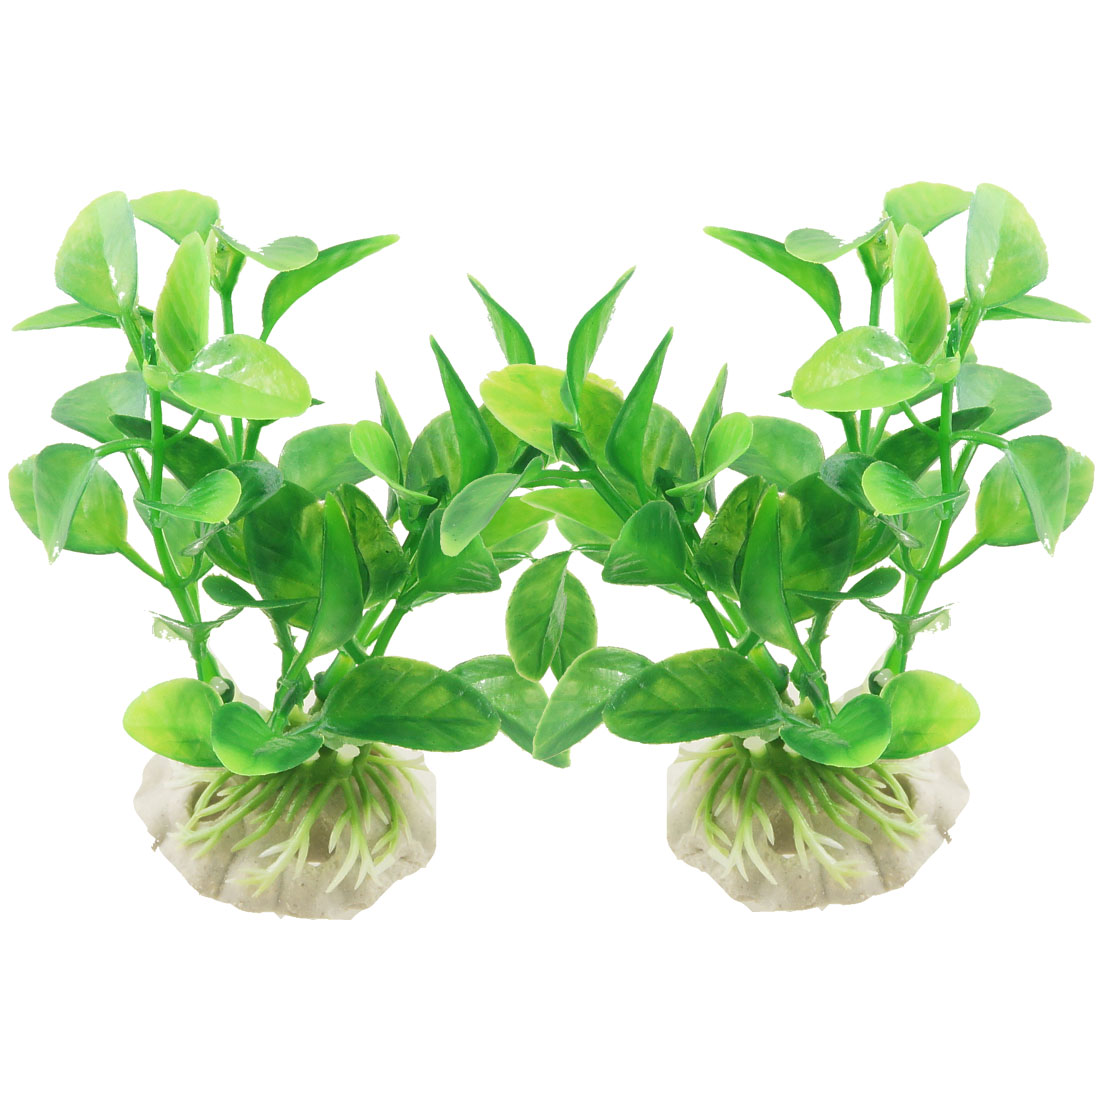 Ceramic Base Artifical Plastic Aquarium Fish Tank Ornament Plant Grass 2 Pcs